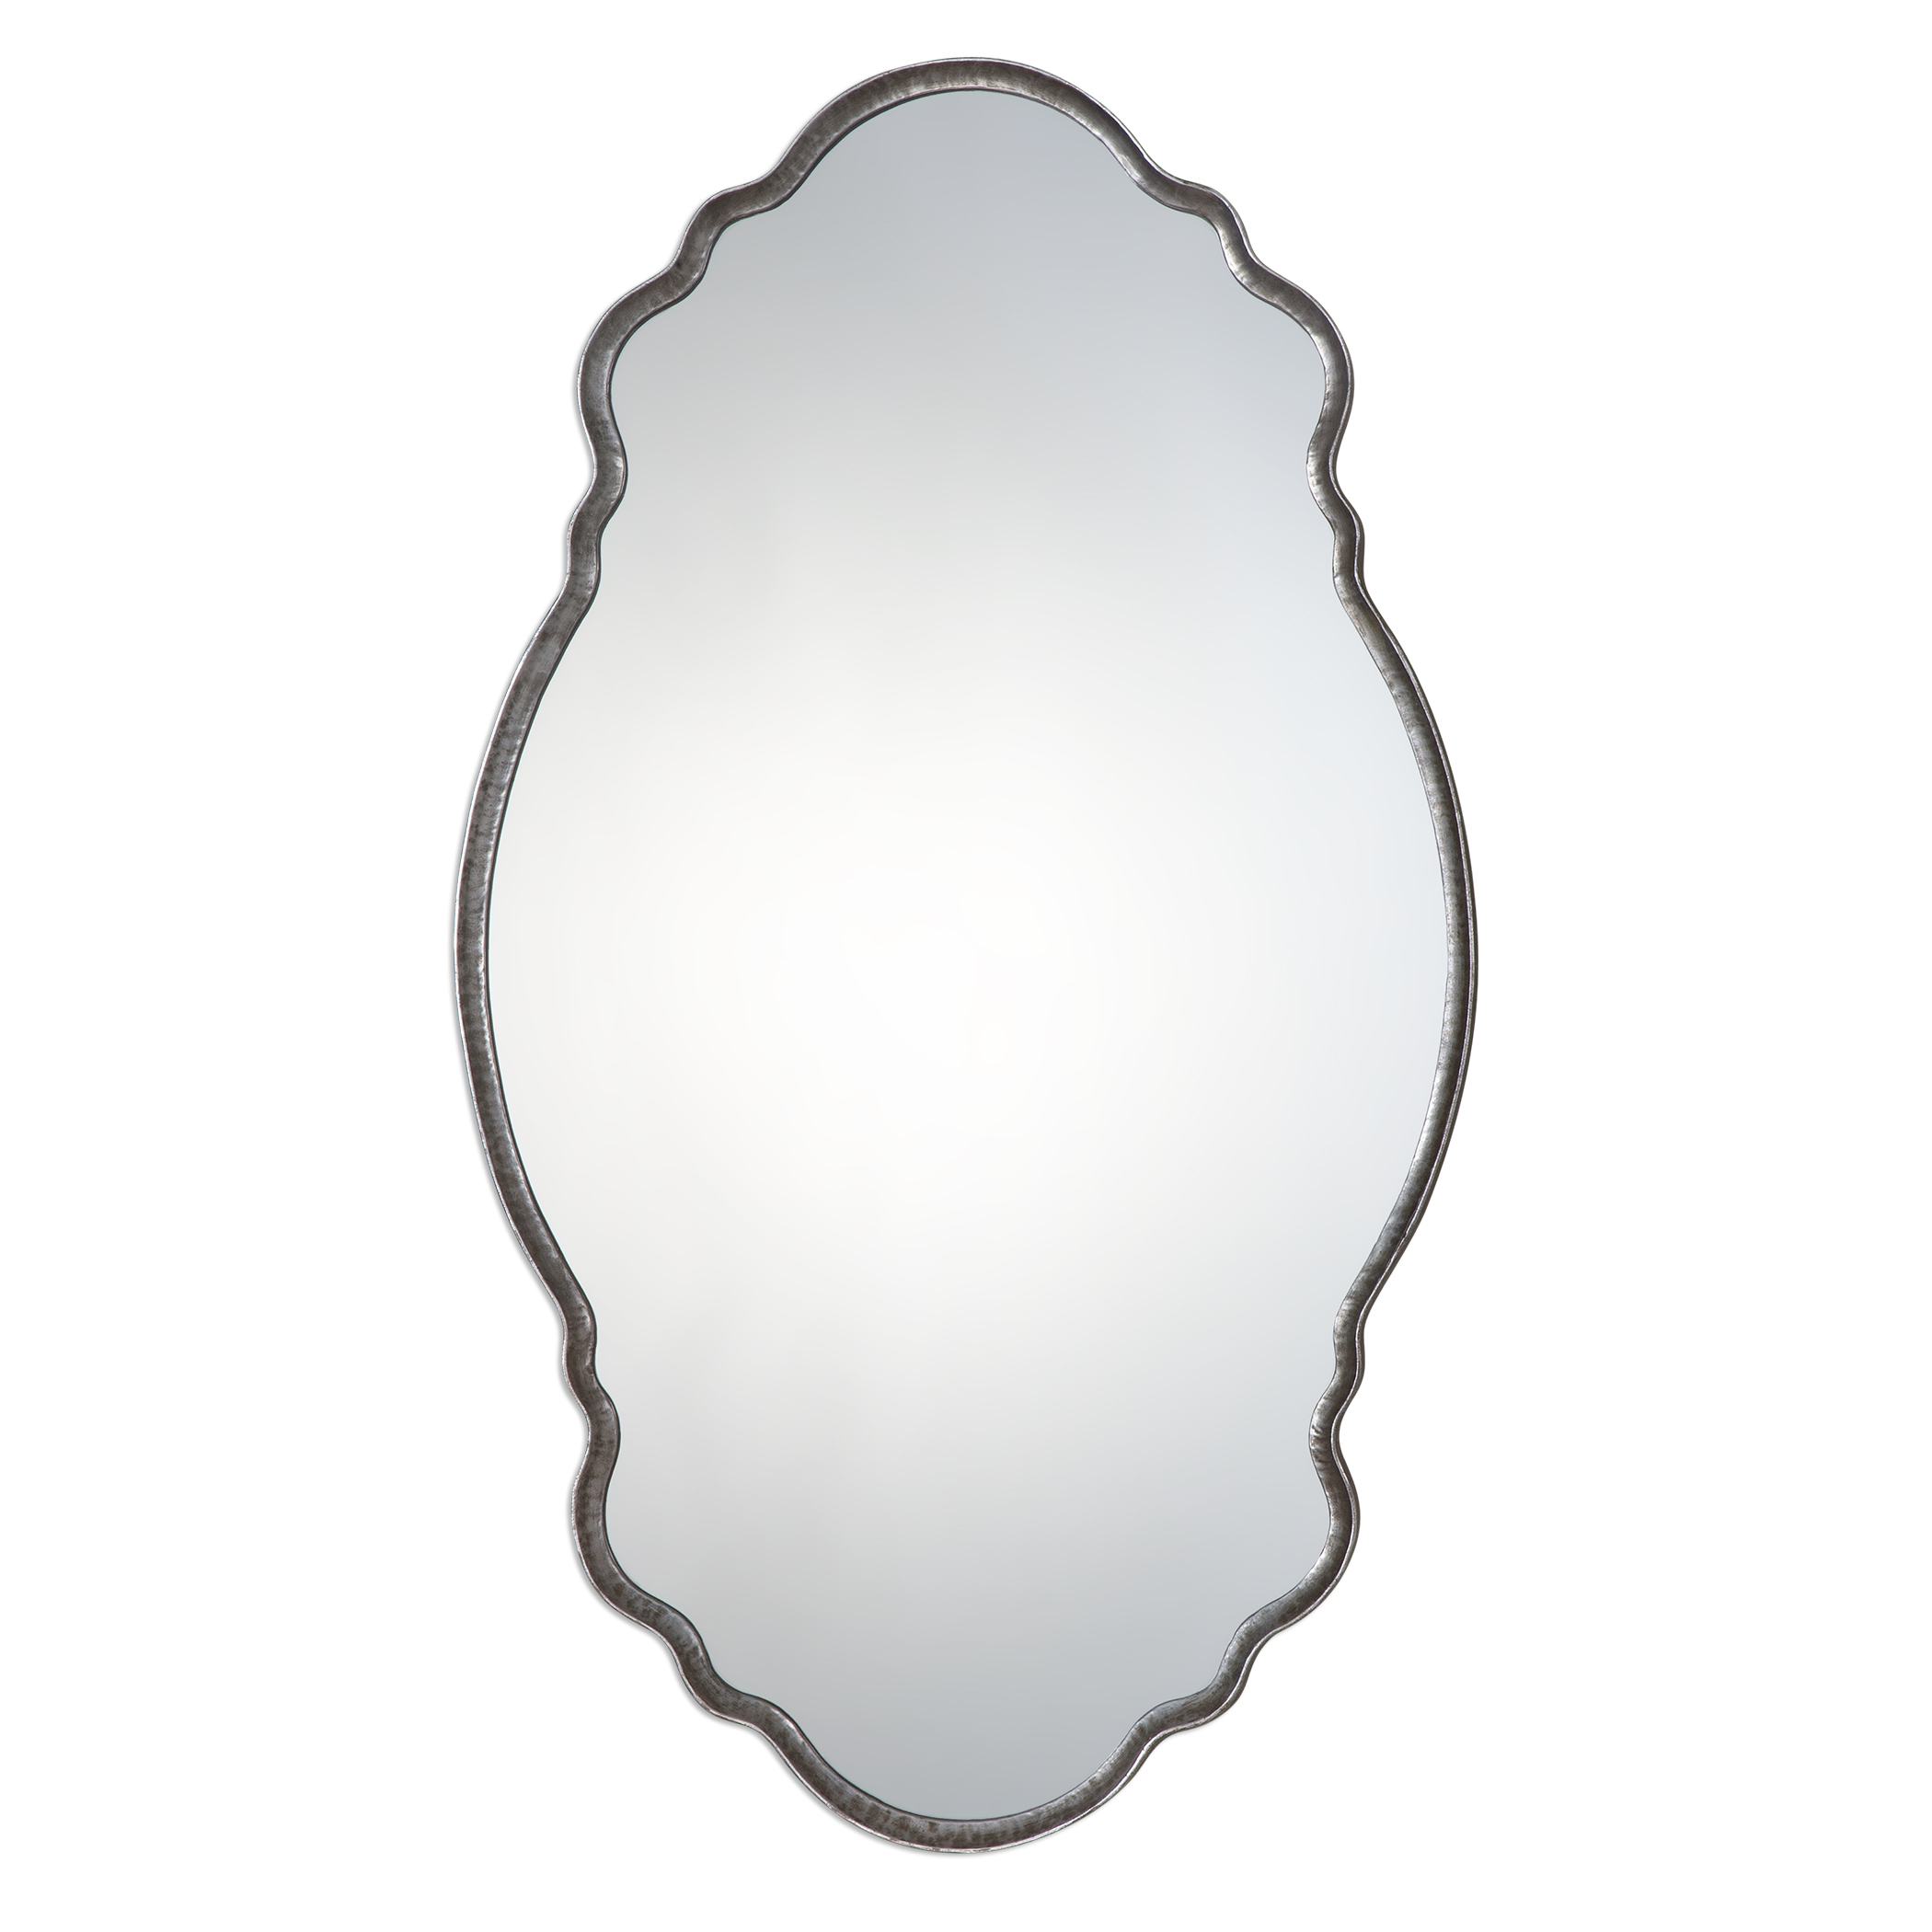 Uttermost Mirrors Samia Silver Mirror - Item Number: 09077